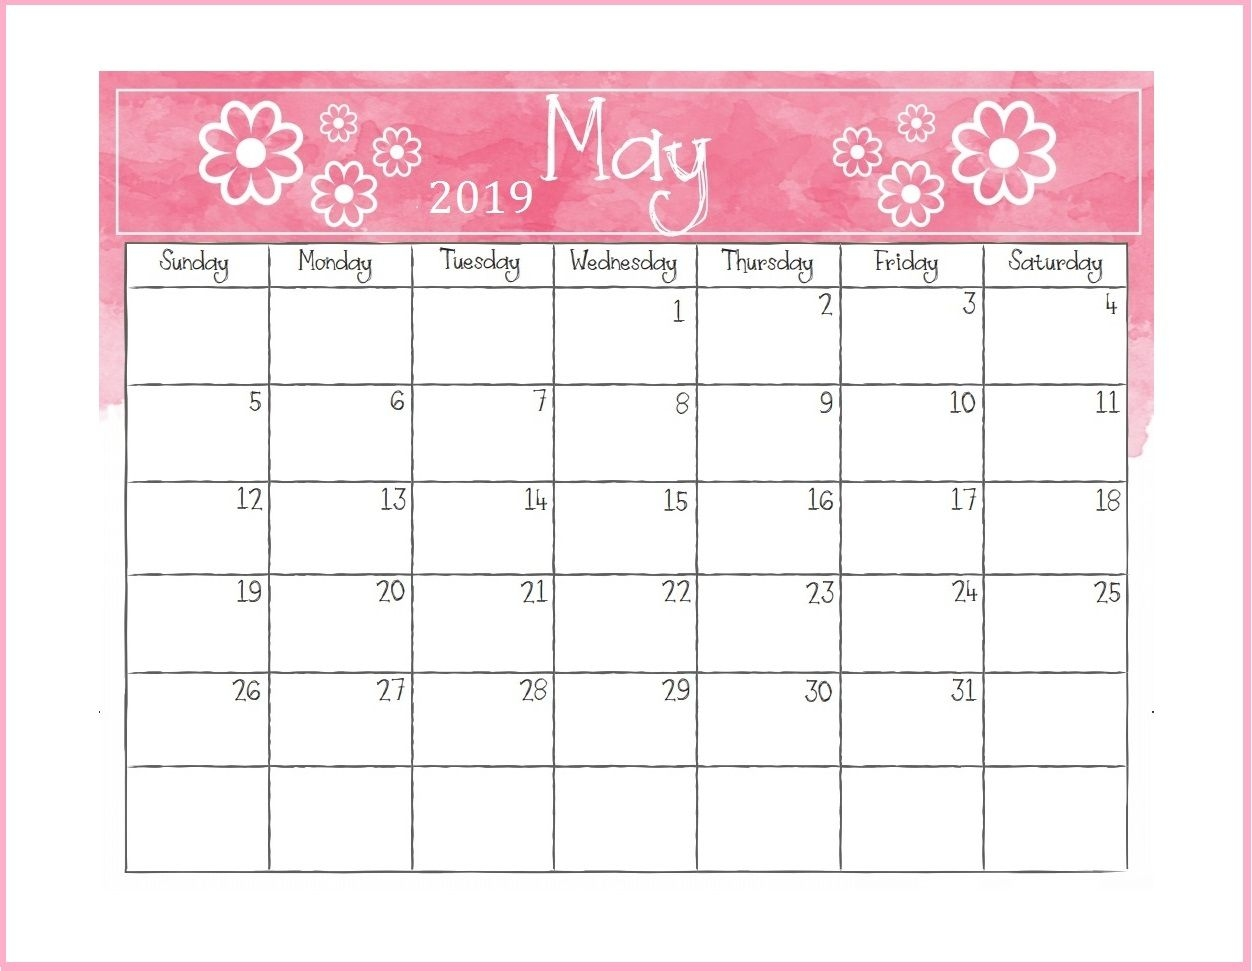 printable may 2019 desk calendar monthly calendar templates::May 2019 Desk Calendar